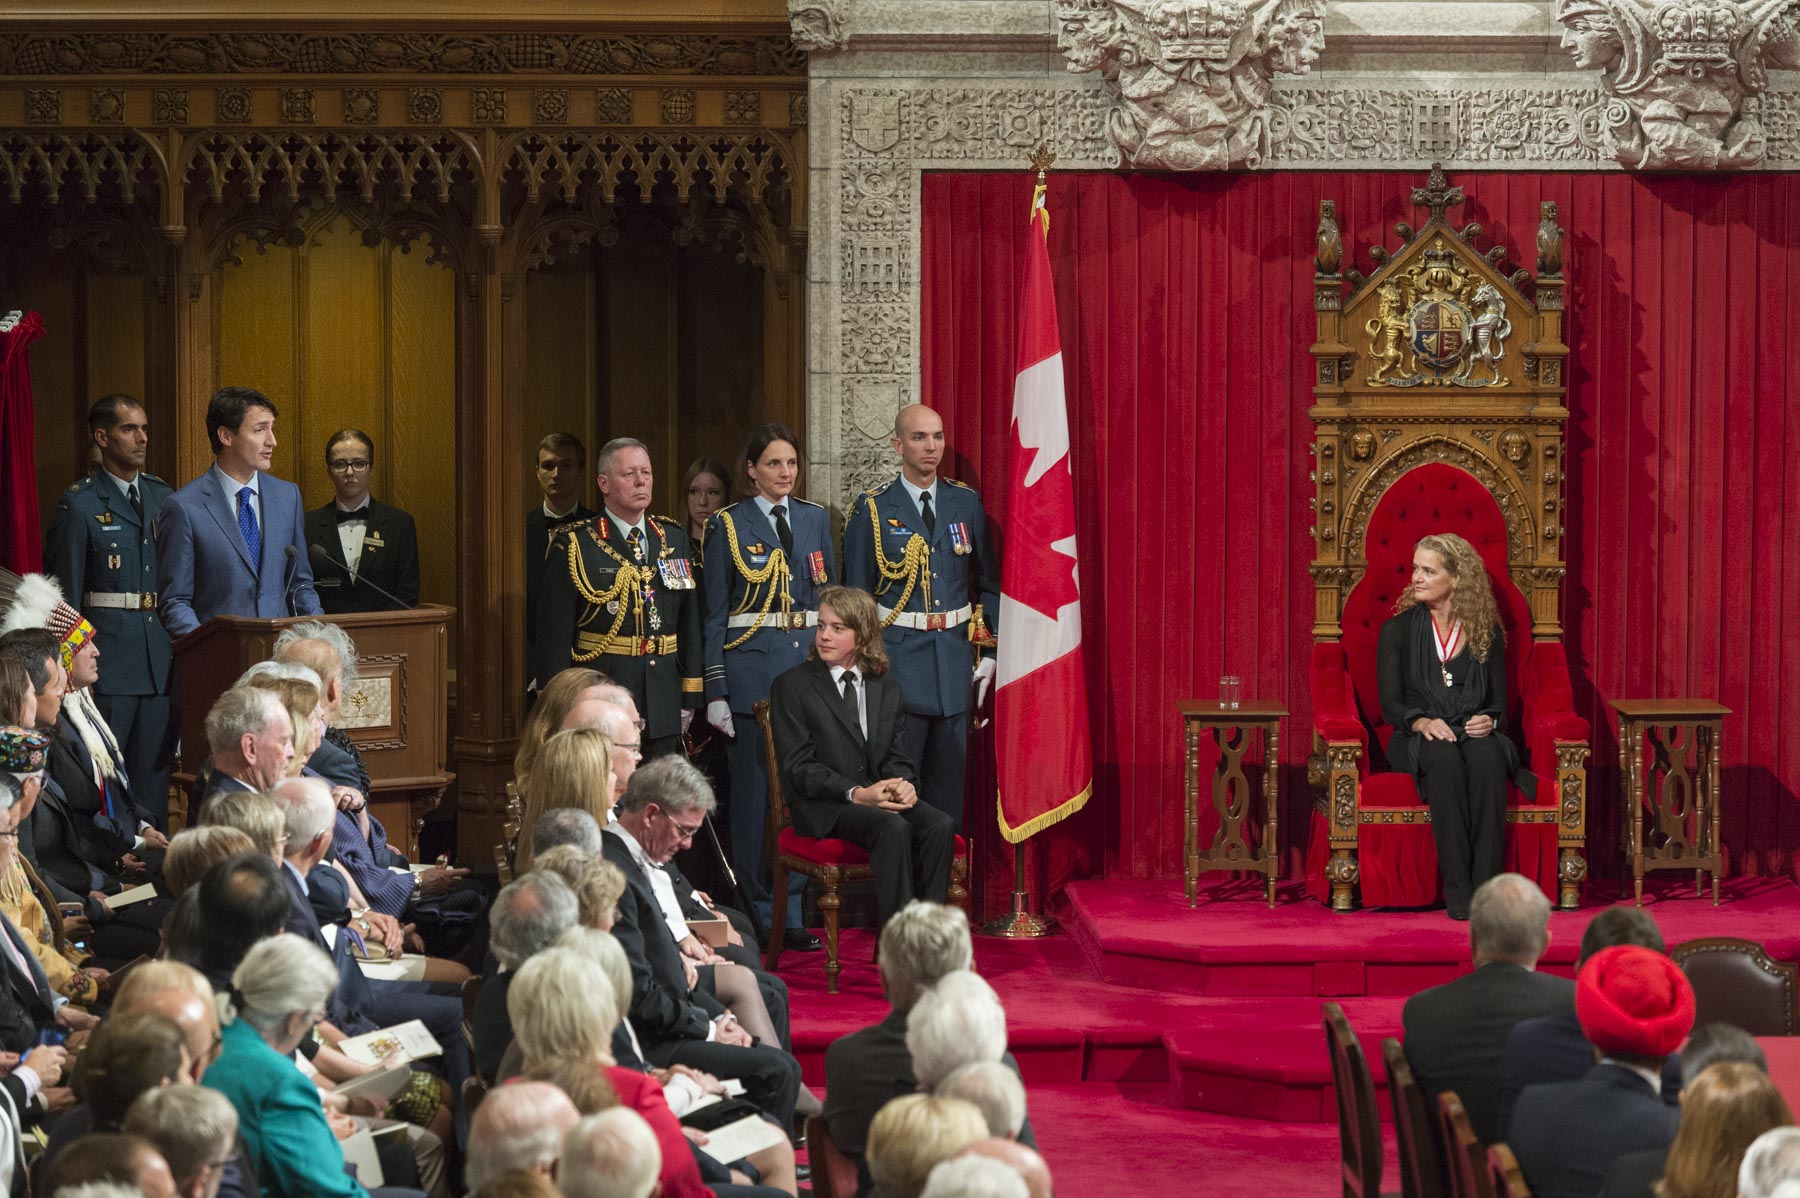 The Right Honourable Justin Trudeau, Prime Minister of Canada, addressed those in attendance.